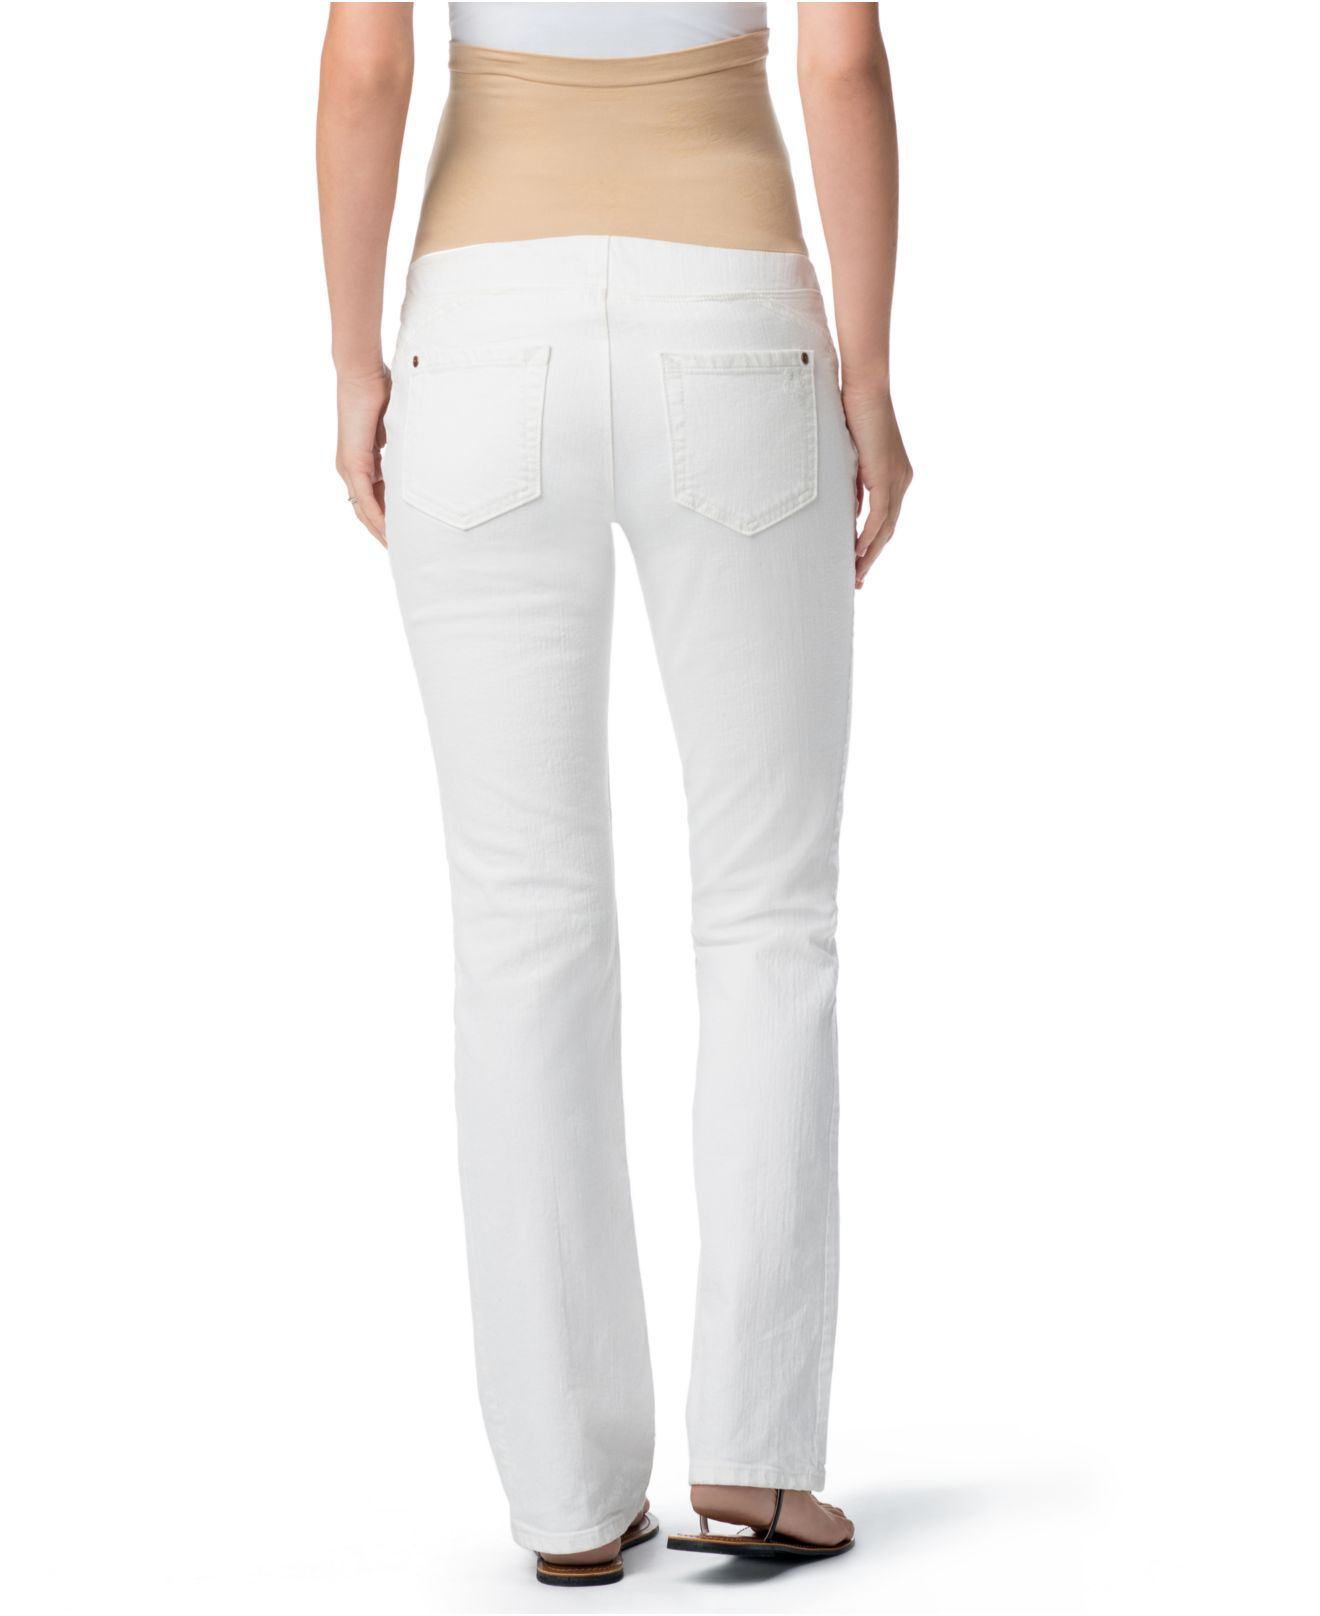 Jessica simpson Maternity Bootcut Maternity Jeans in White | Lyst